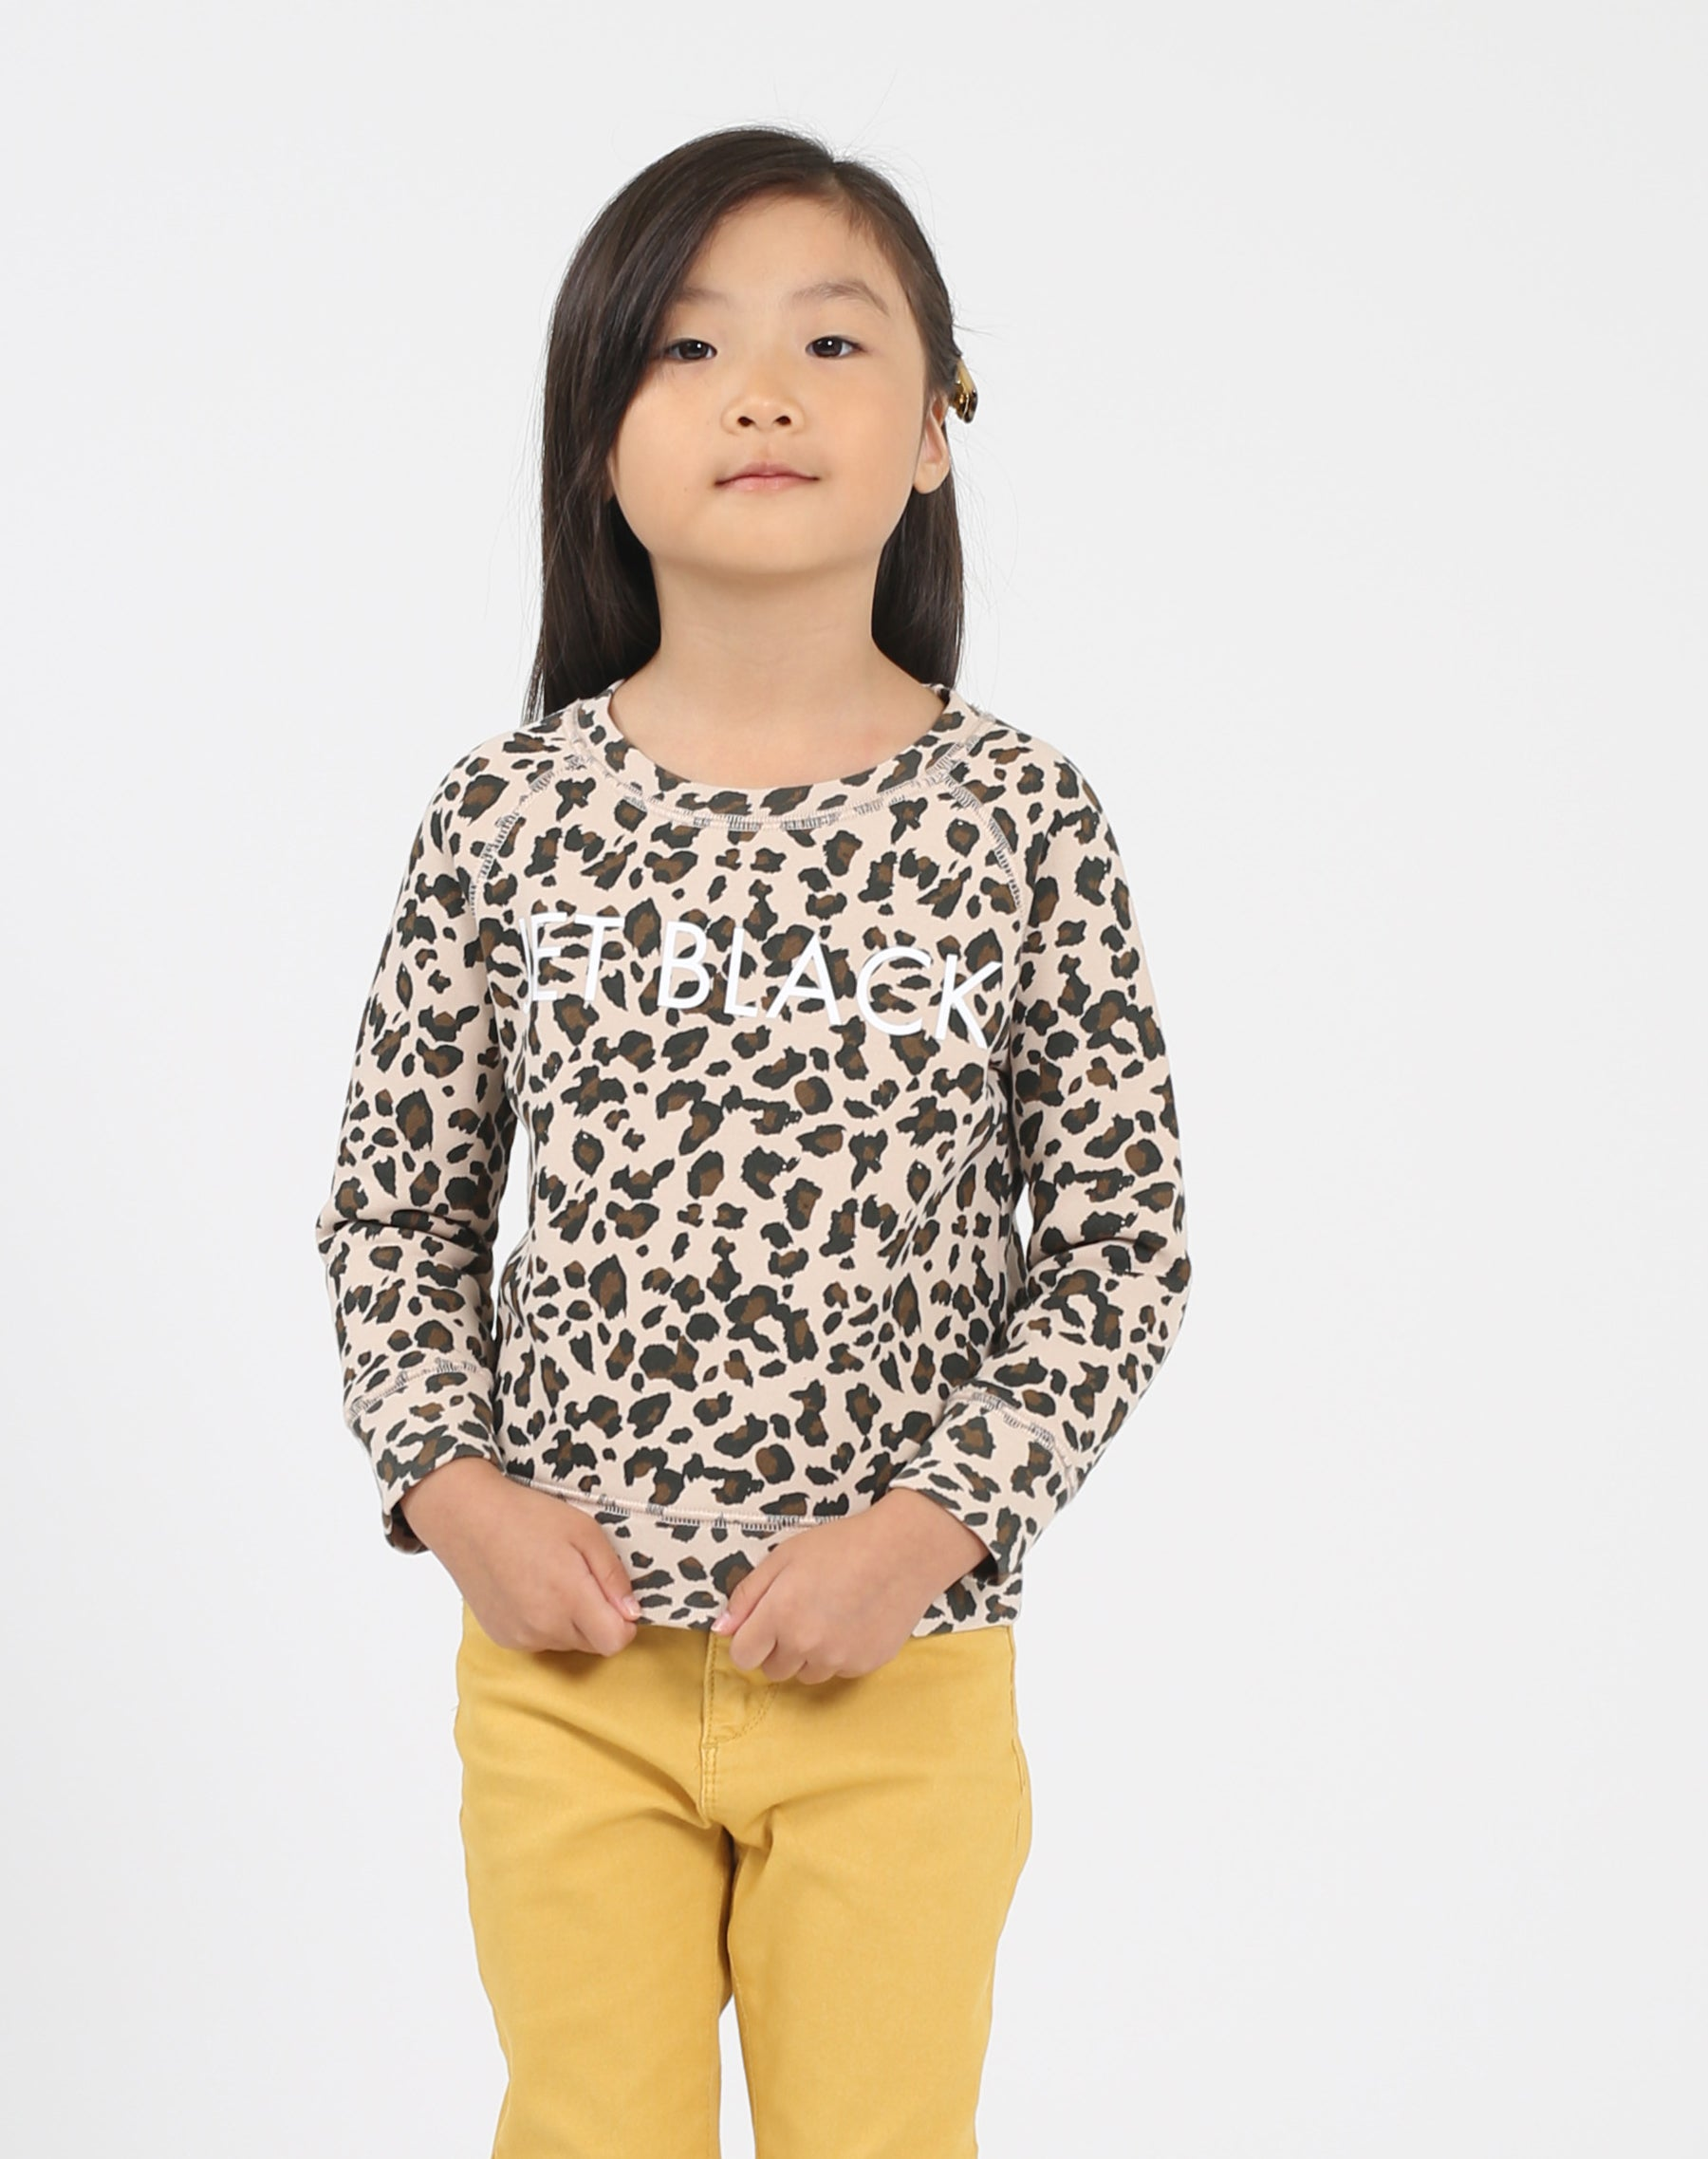 Photo of the Jet Black Little Babes classic crew neck sweatshirt in leopard by Brunette the Label.